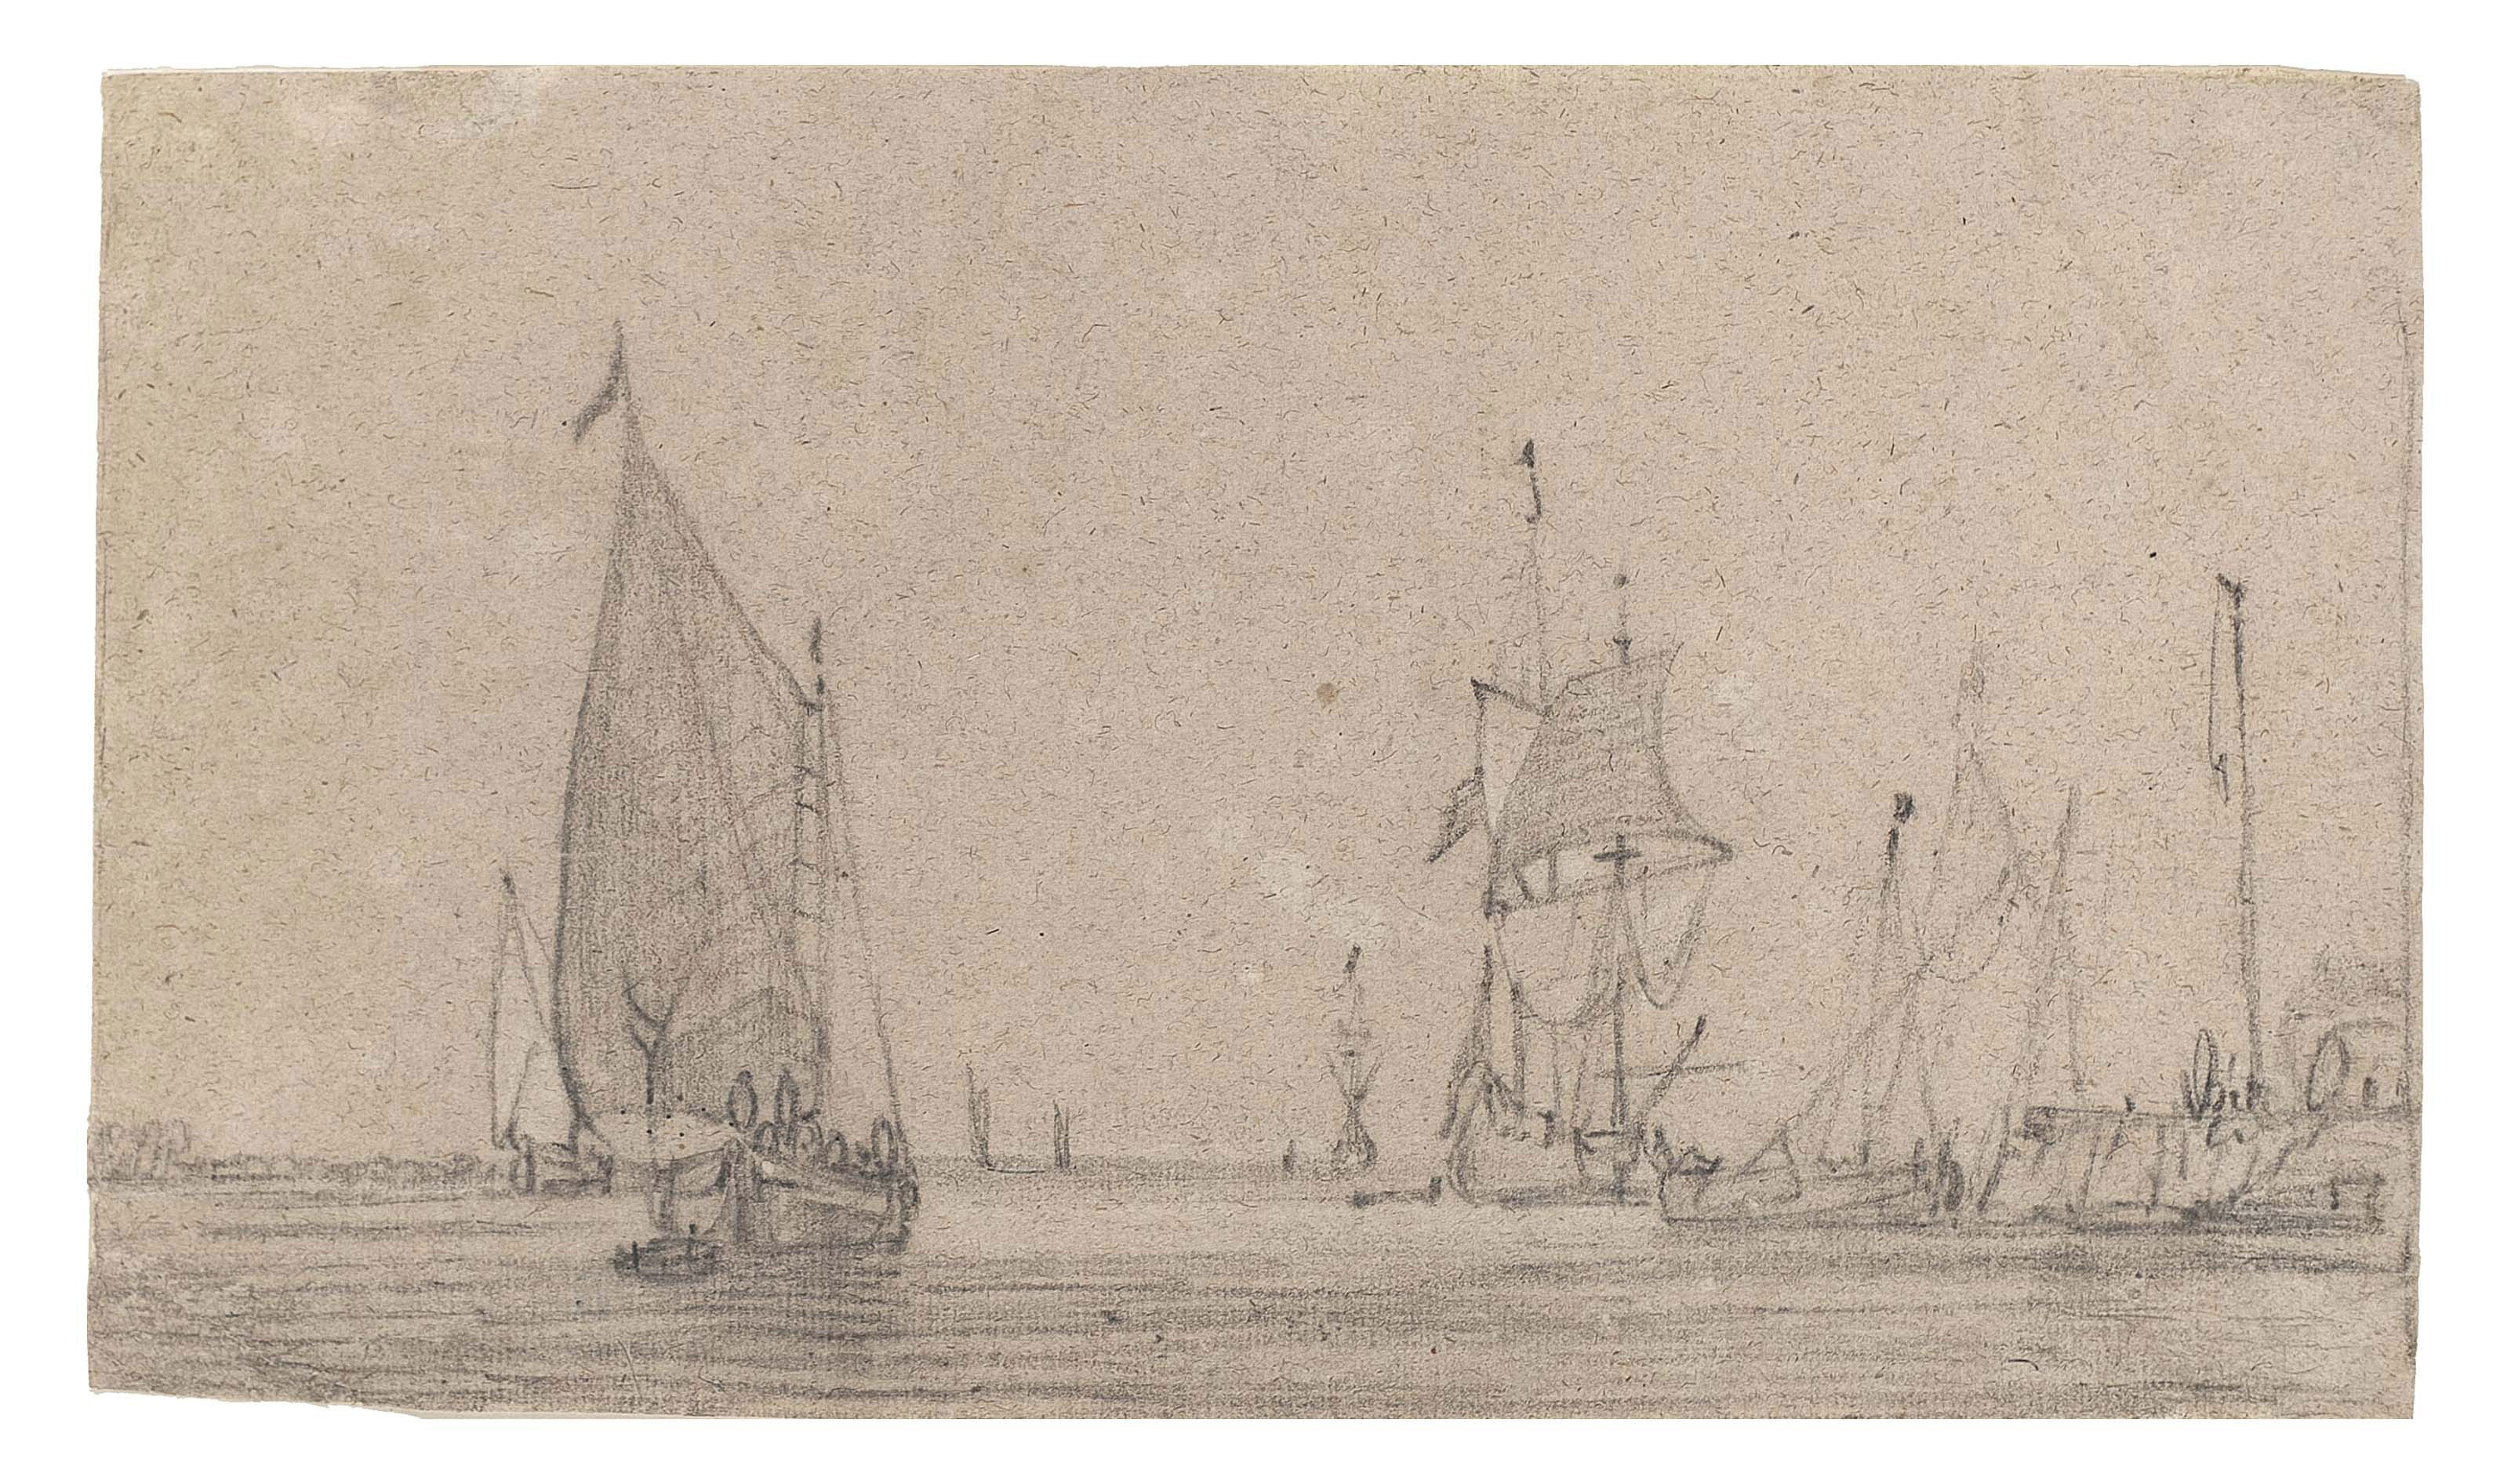 Fishing vessels and yachts in calm waters in a harbour